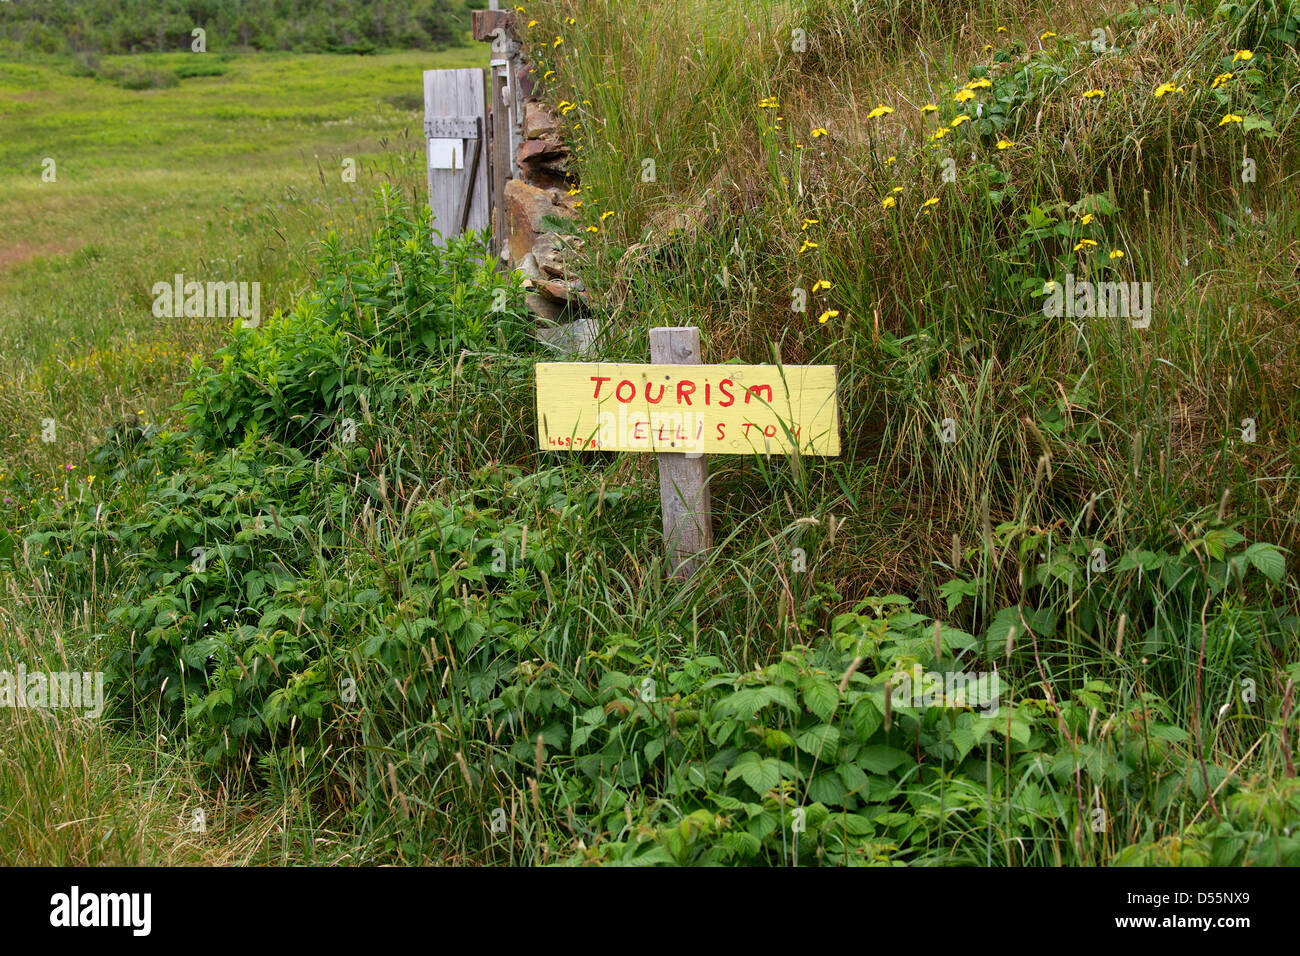 Hand painted Tourism Elliston sign, root cellar in the background. - Stock Image